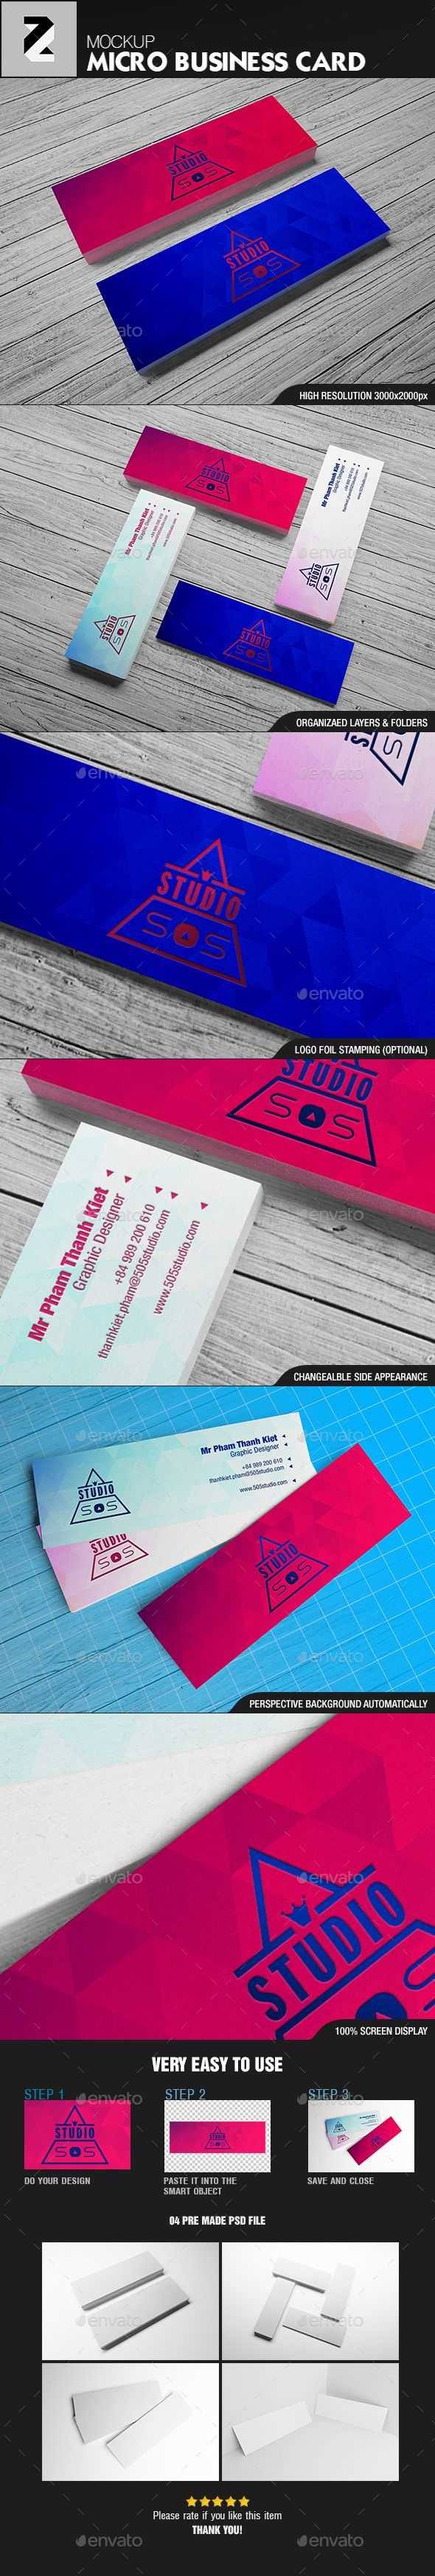 Realistic micro business card mockup pinterest mockup business micro business card mockup business cards print download here httpsgraphicriveritemrealistic micro business card mockup19727202ref colourmoves